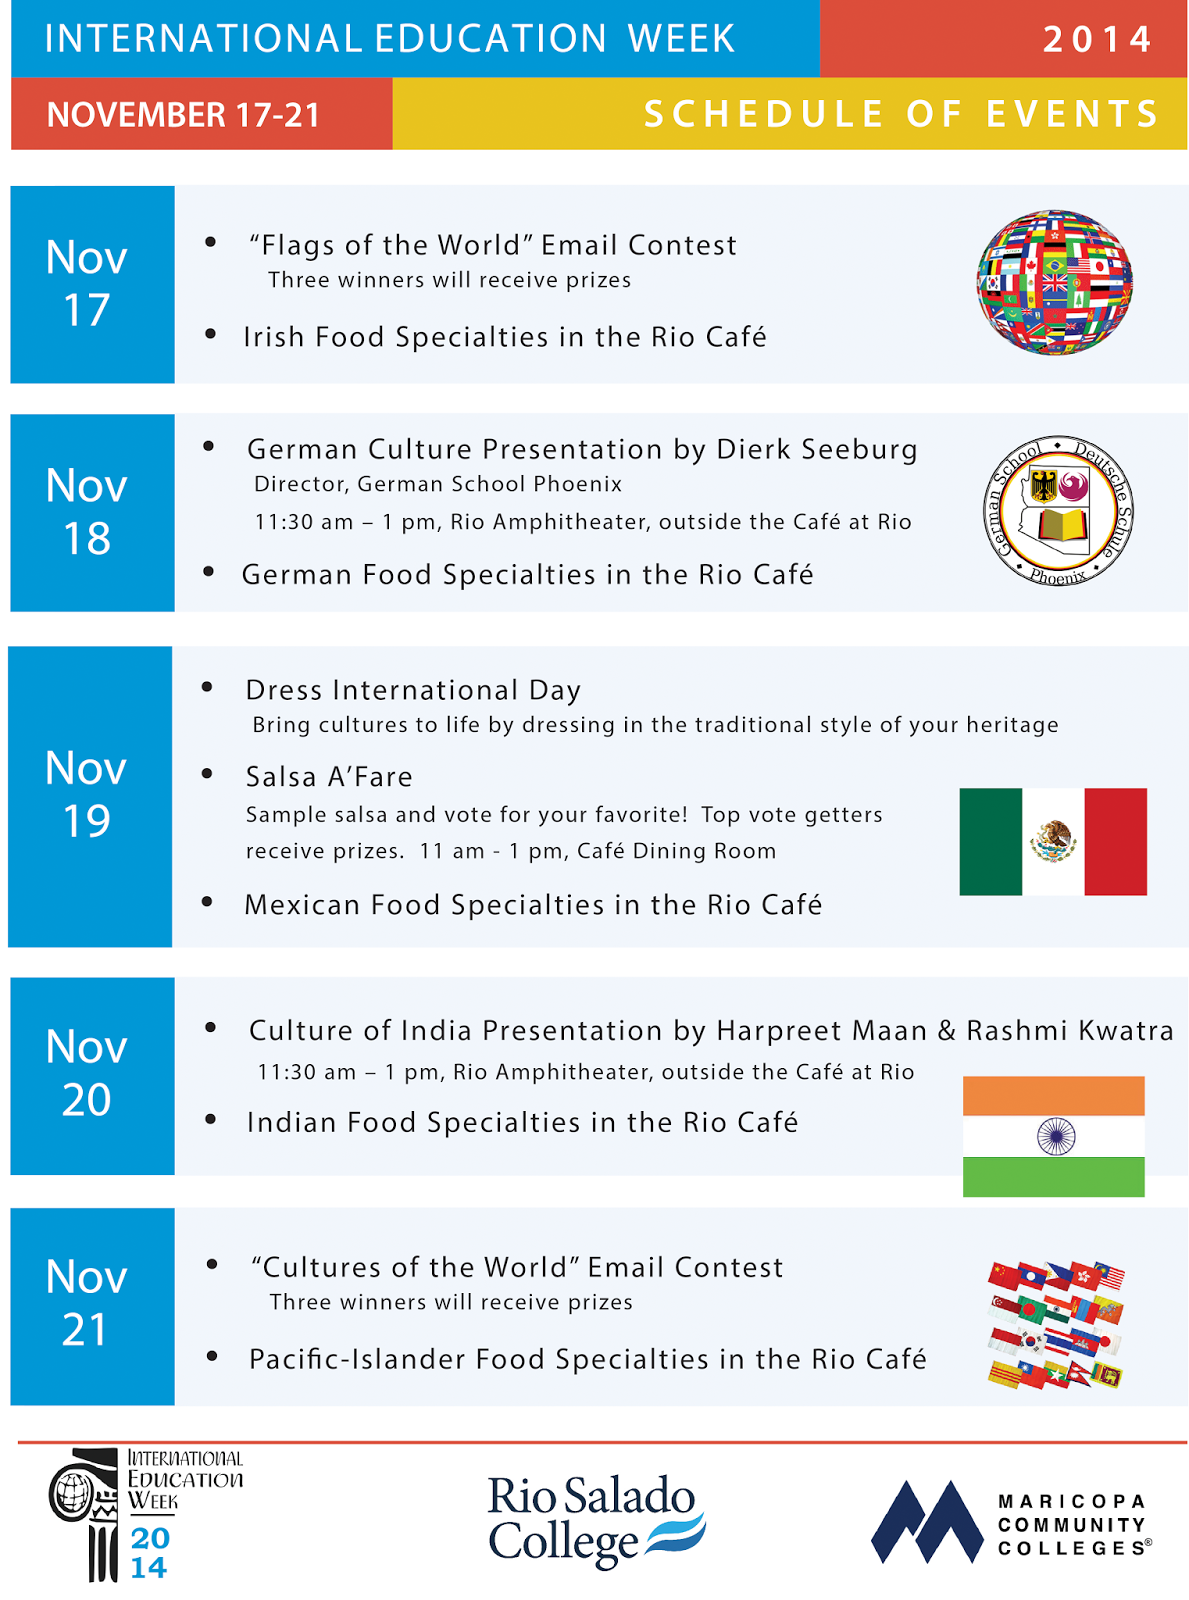 Title: International Education Week at Rio Salado Nov. 17-21 - Description: Schedule of Events   Monday, Nov. 17th  Flags of the World Email Contest; open to all Rio employees, students, and District staff.  Irish Food Specialties in the Rio Cafe.  Tuesday, Nov. 18th  Presentation on German Culture by Dierk Seeburg, Director, German School Phoenix, from 11:30 am to 1 pm in the Rio Amphitheater, between the Tower and Hohokam Buildings.  German Food Specialties in the Rio Café.  Wednesday, Nov. 19th  Wear Your International Flair Day. Bring international cultures to life by dressing in the traditional style of your heritage or your adopted heritage.  Salsa Contest in the Rio Café Dining room from 11 a.m. to 1 p.m. Taste the entries and vote on your favorite salsa. Top three vote getters will receive prizes.  Mexican Food Specialties in the Rio Café.  Thursday, Nov. 20th  Presentation on the Culture of India by Harpreet Maan and Rashmi Kwatra from 11:30 am to 1 pm in the Rio Amphitheater between the Tower and Hohokam Buildings.  Indian Food Specialties in the Rio Café.  Friday, Nov. 21st  Cultures of the World Email Contest; open to all Rio employees, students, and District staff.  Pacific Islander Food Specialties in the Rio Café.